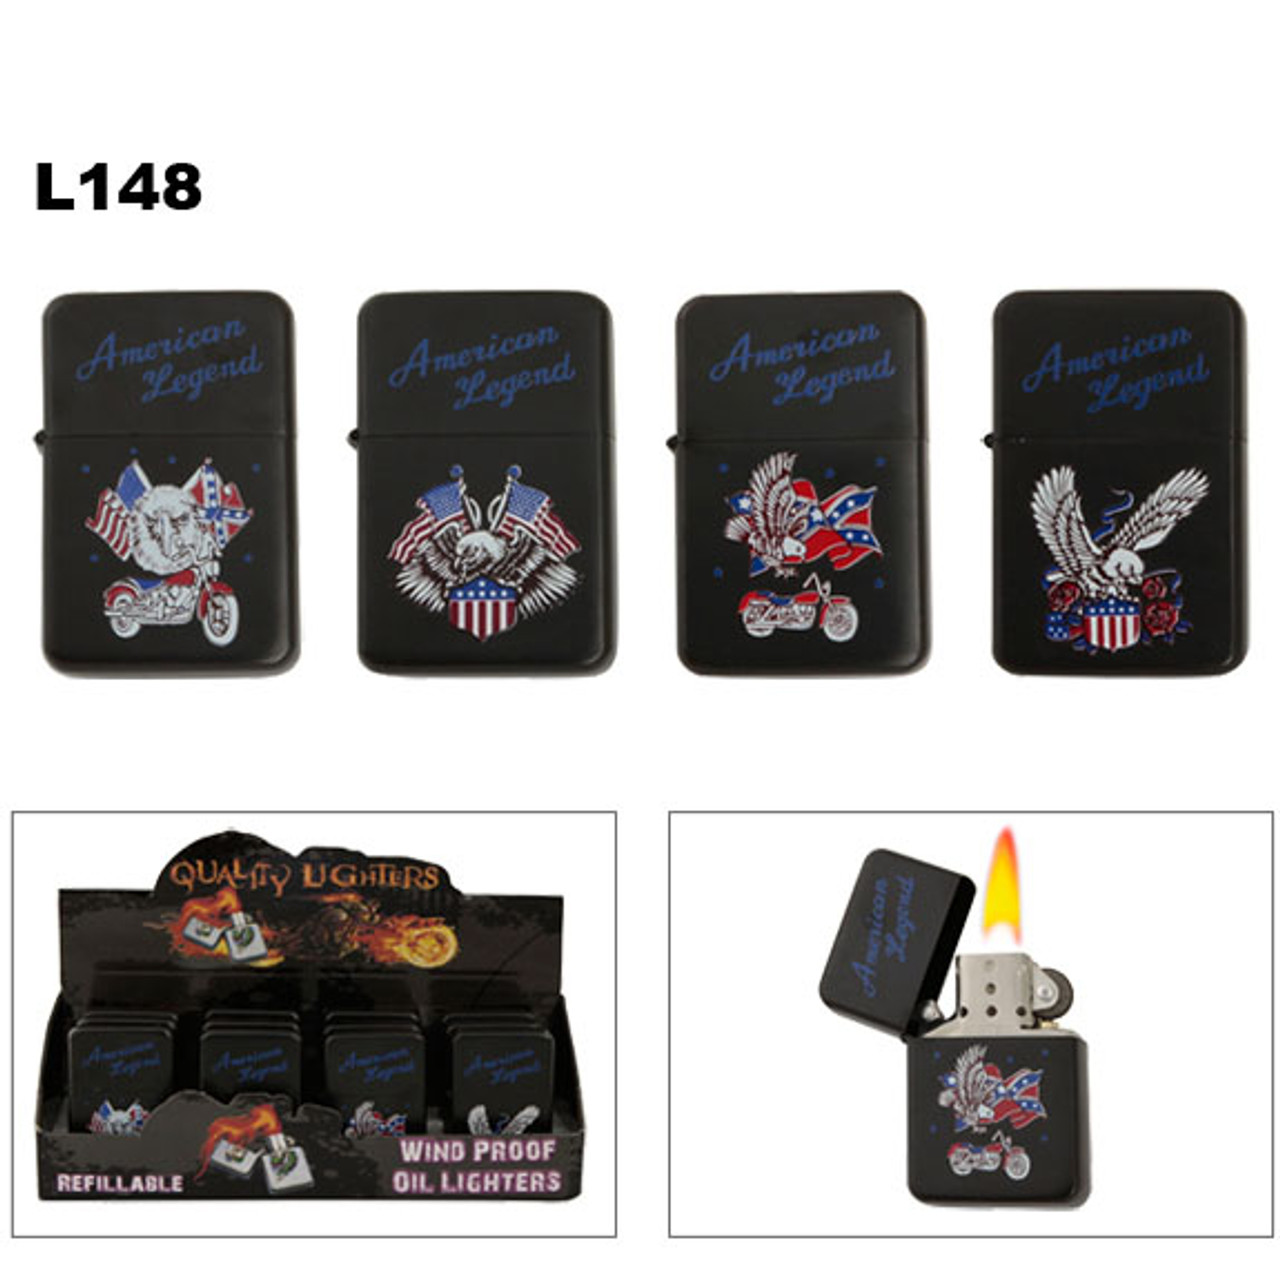 American Legend Oil Lighters Wholesale